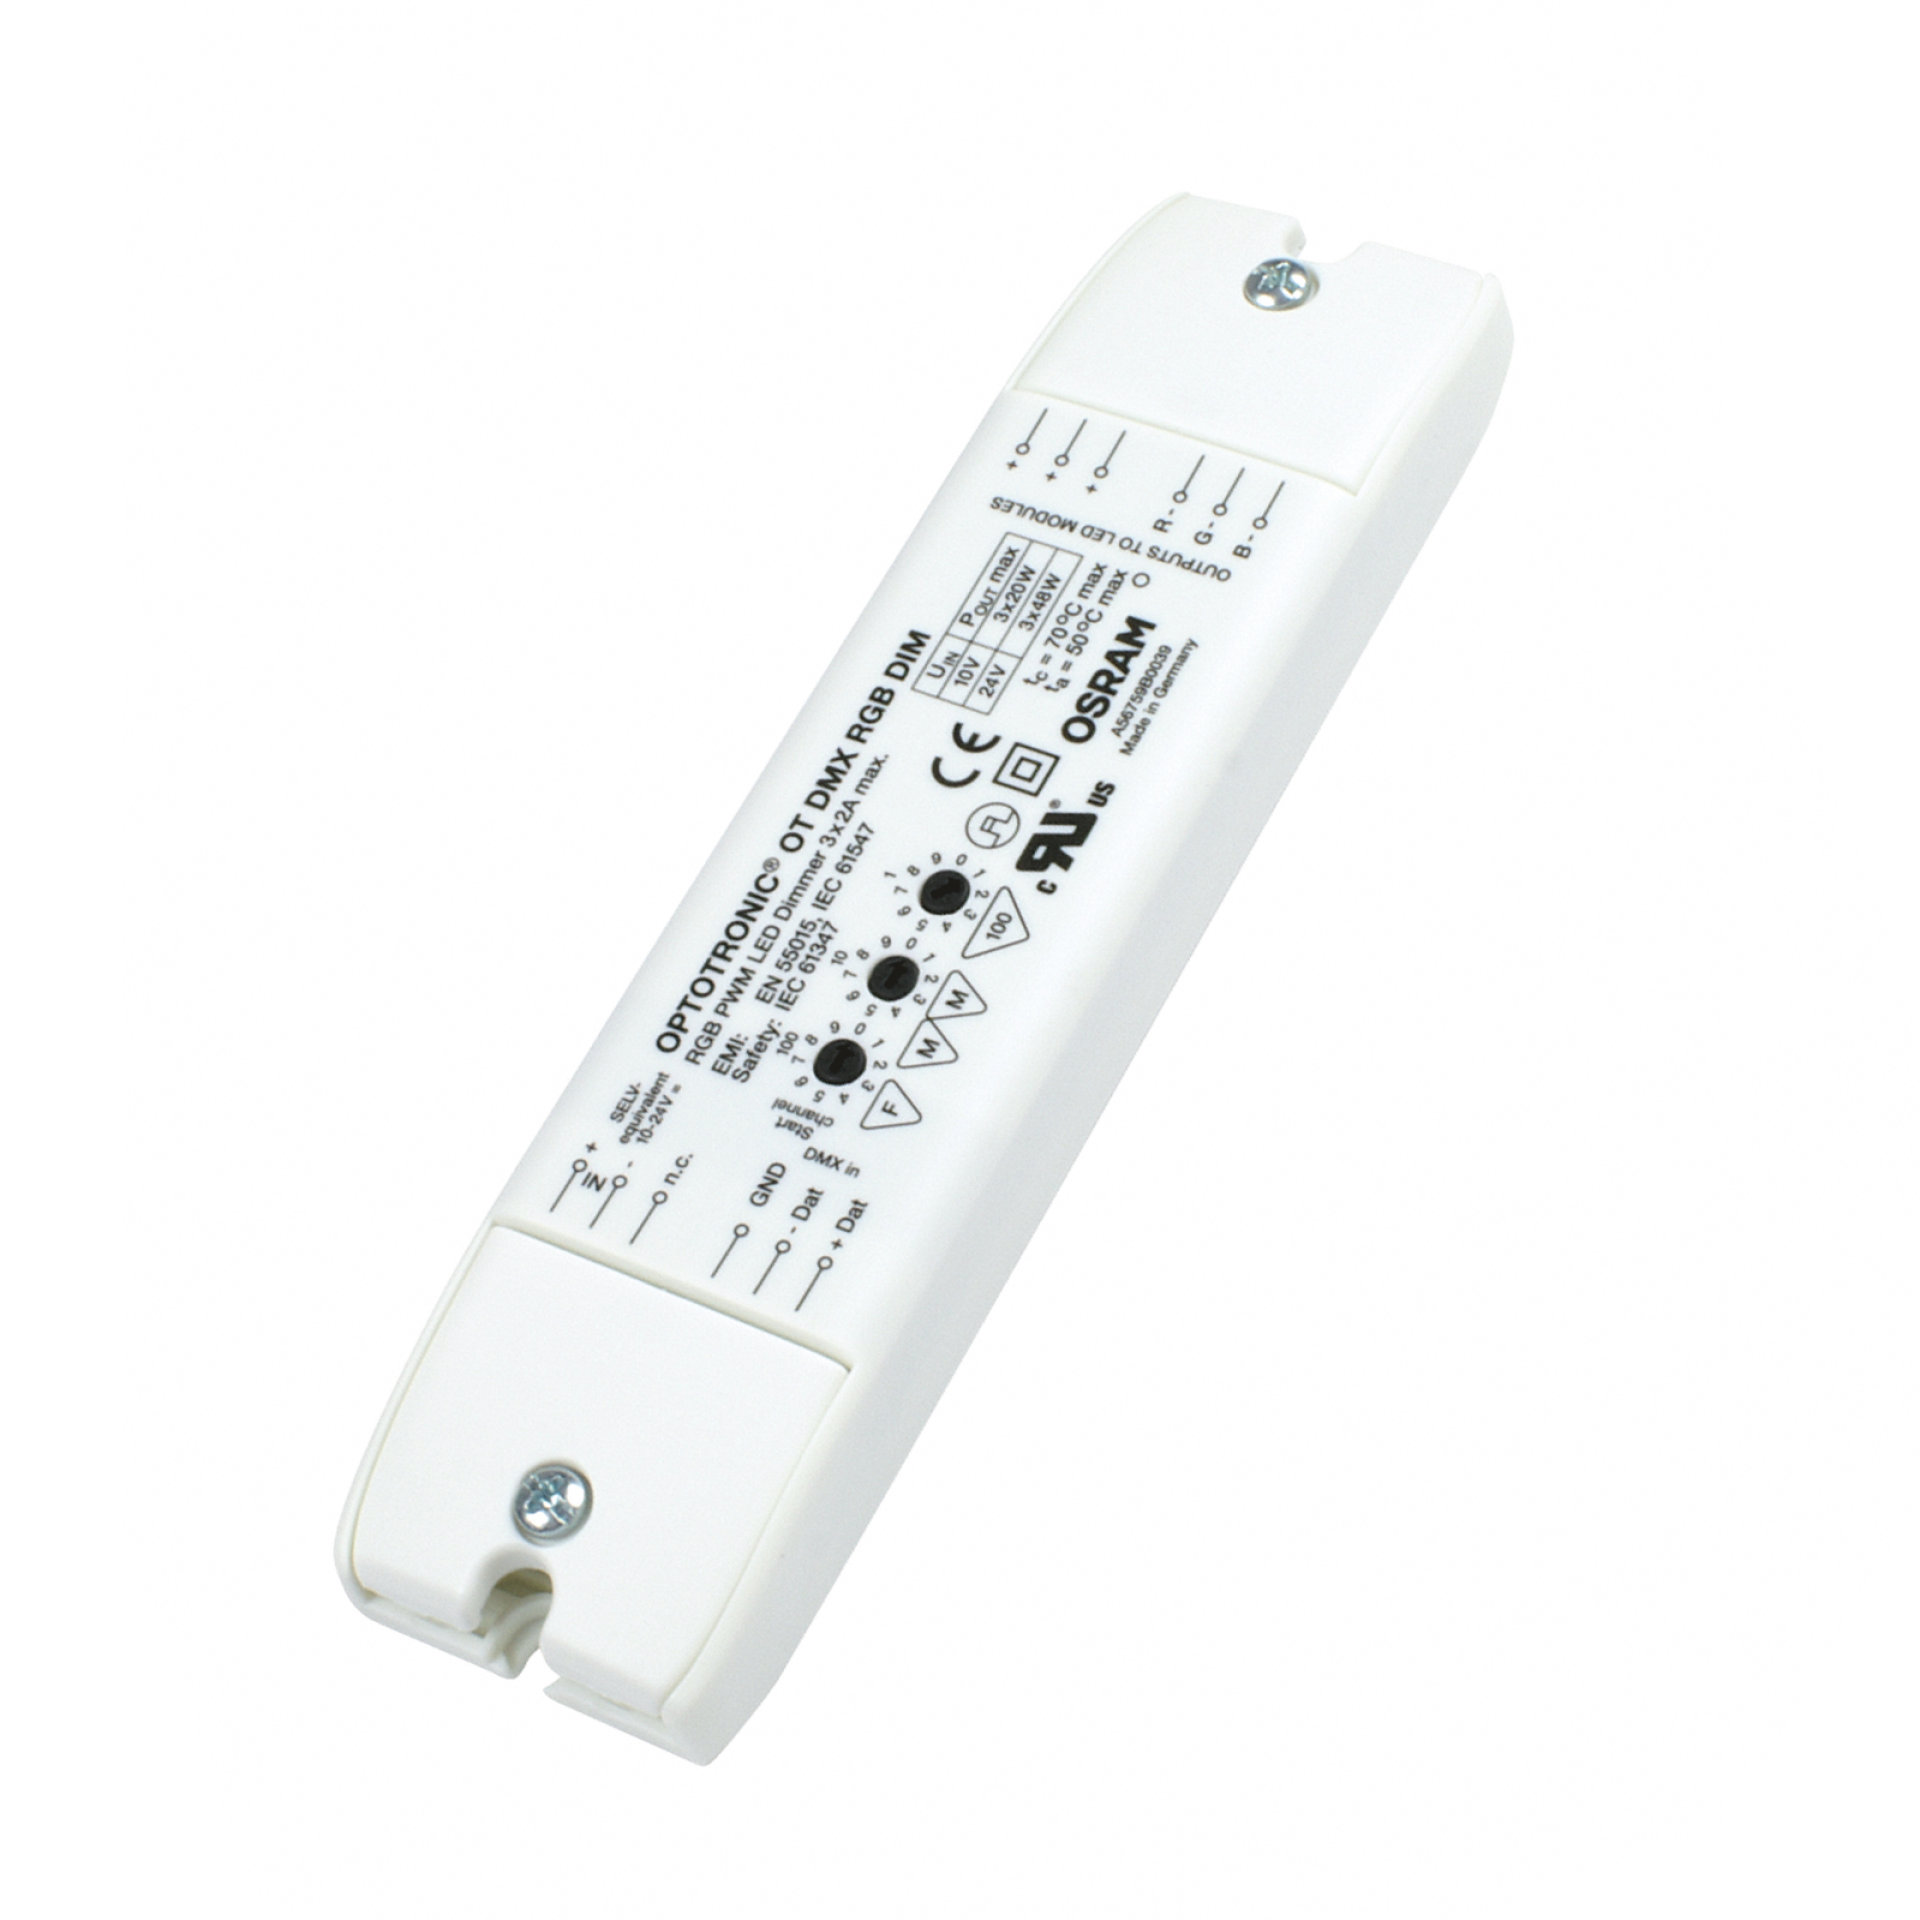 CV Dimmers with DMX